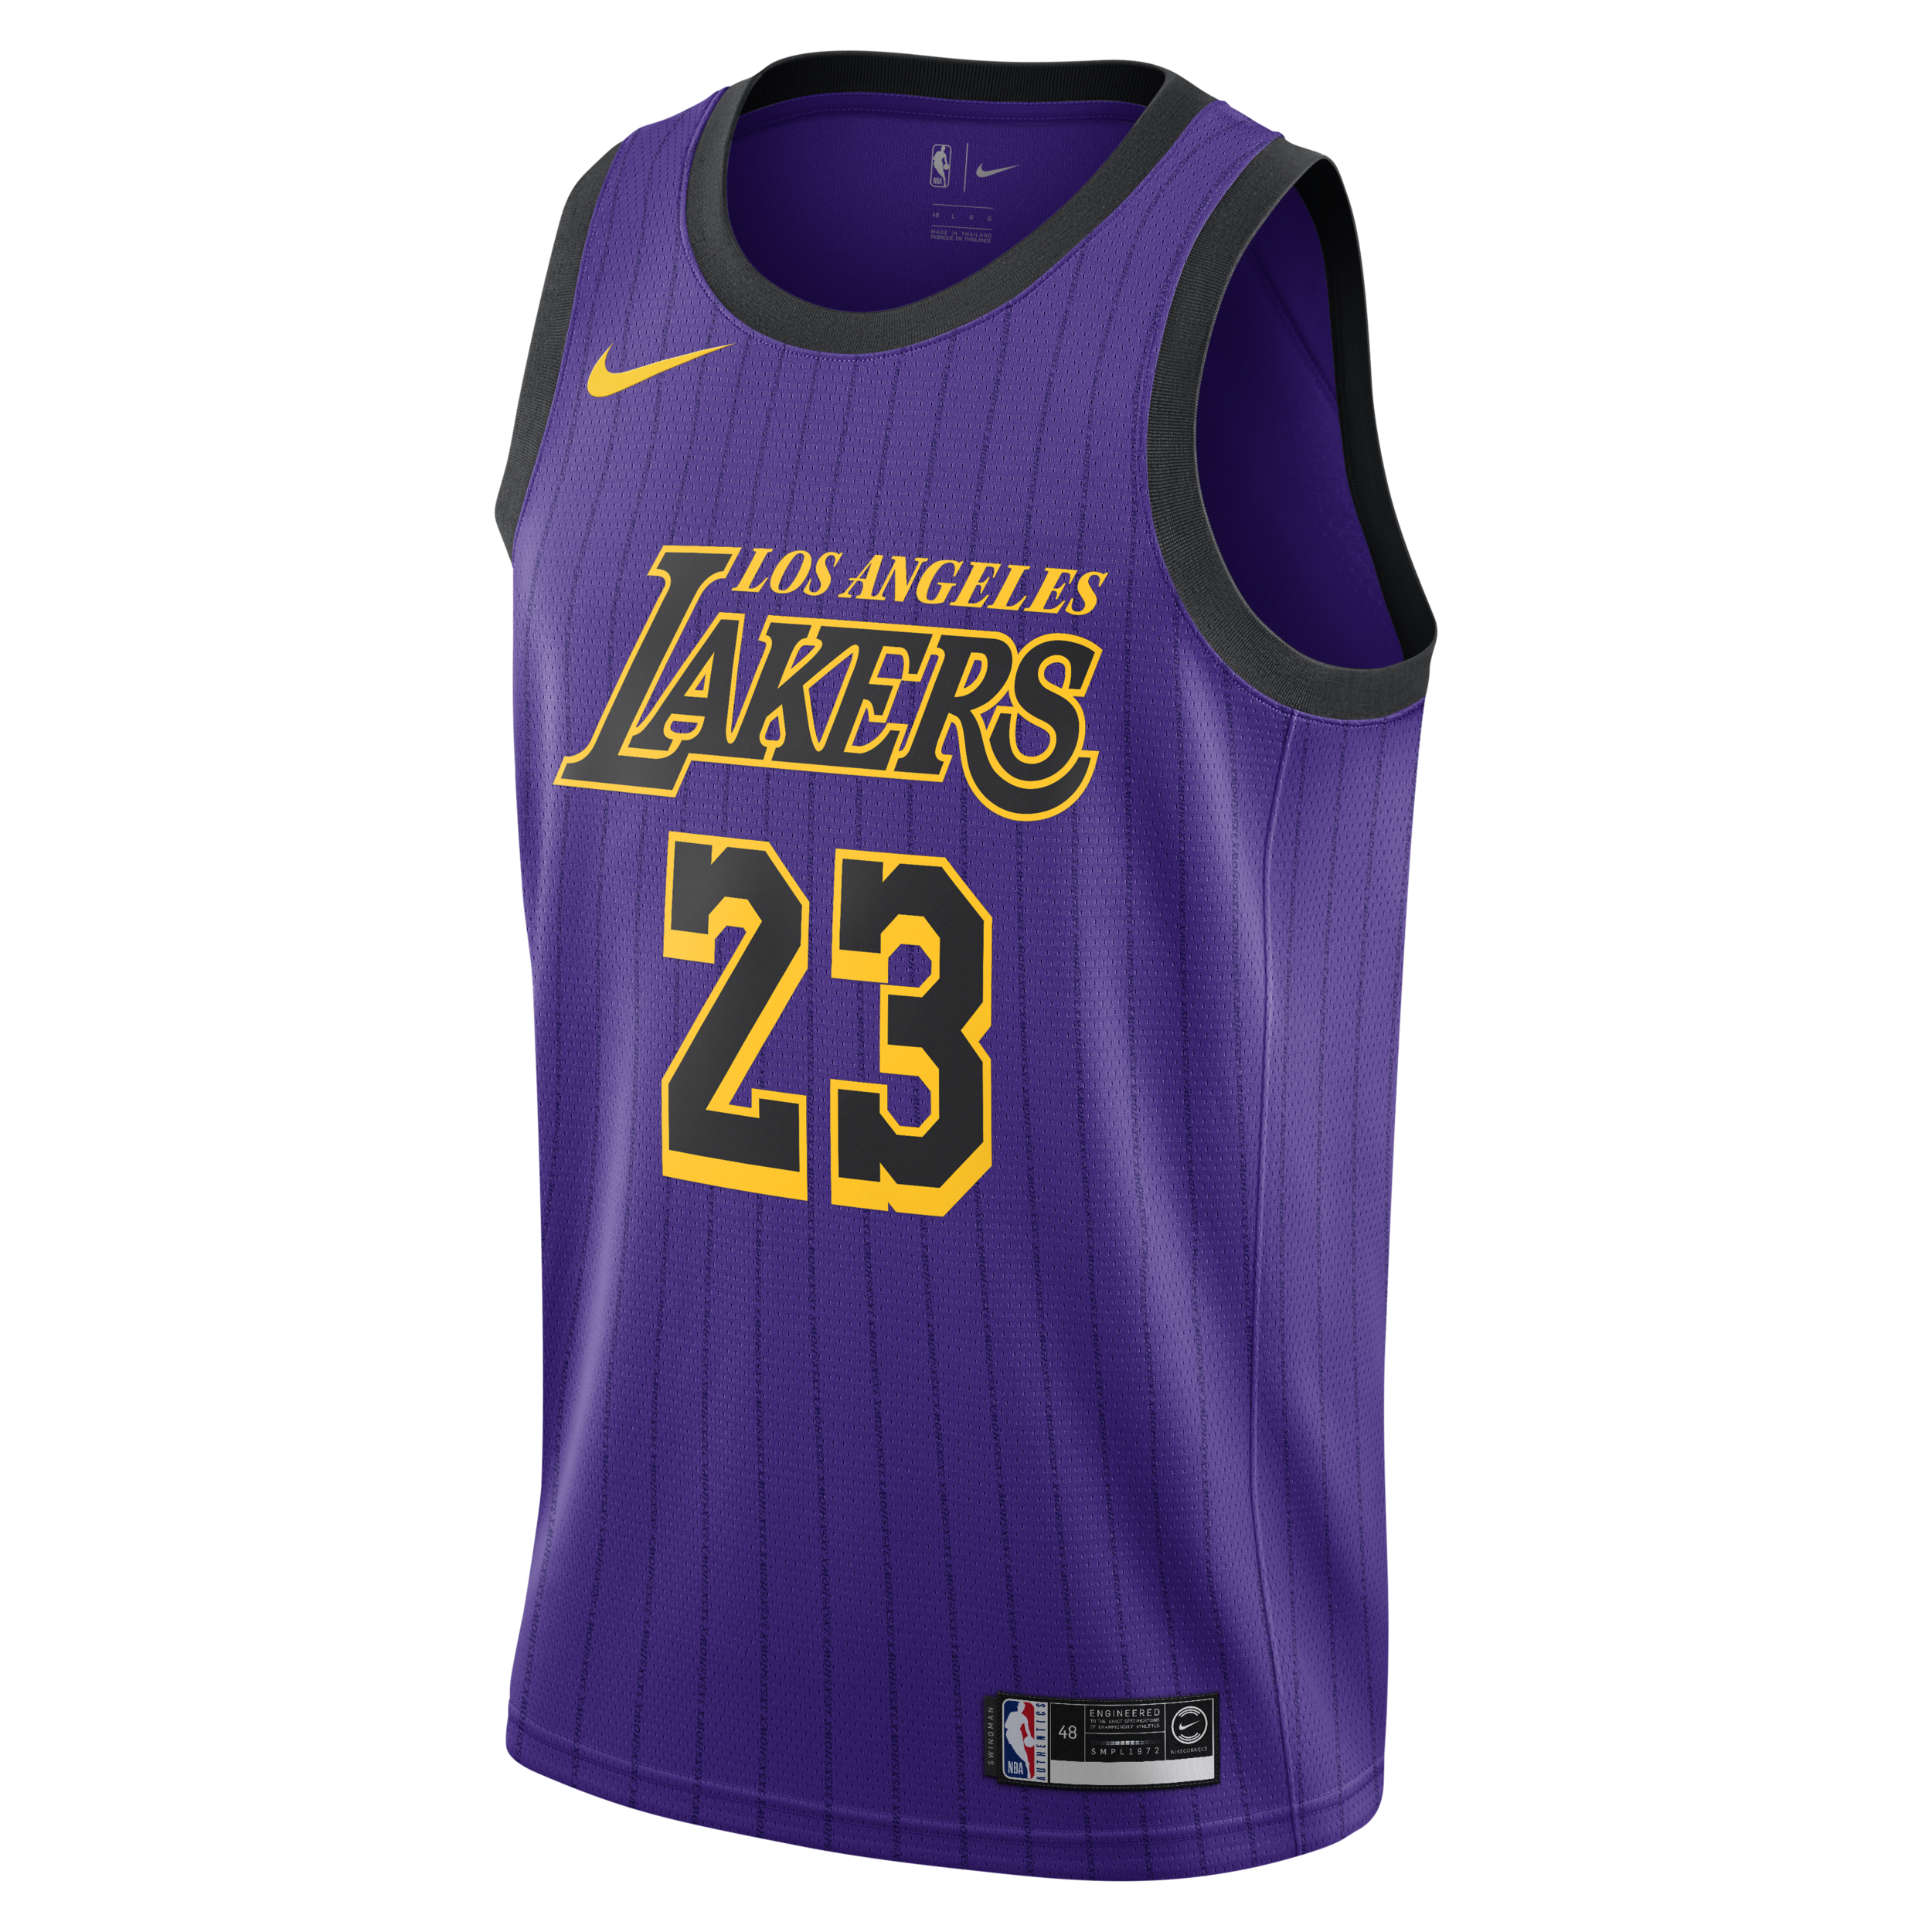 Los Angeles Lakers.png